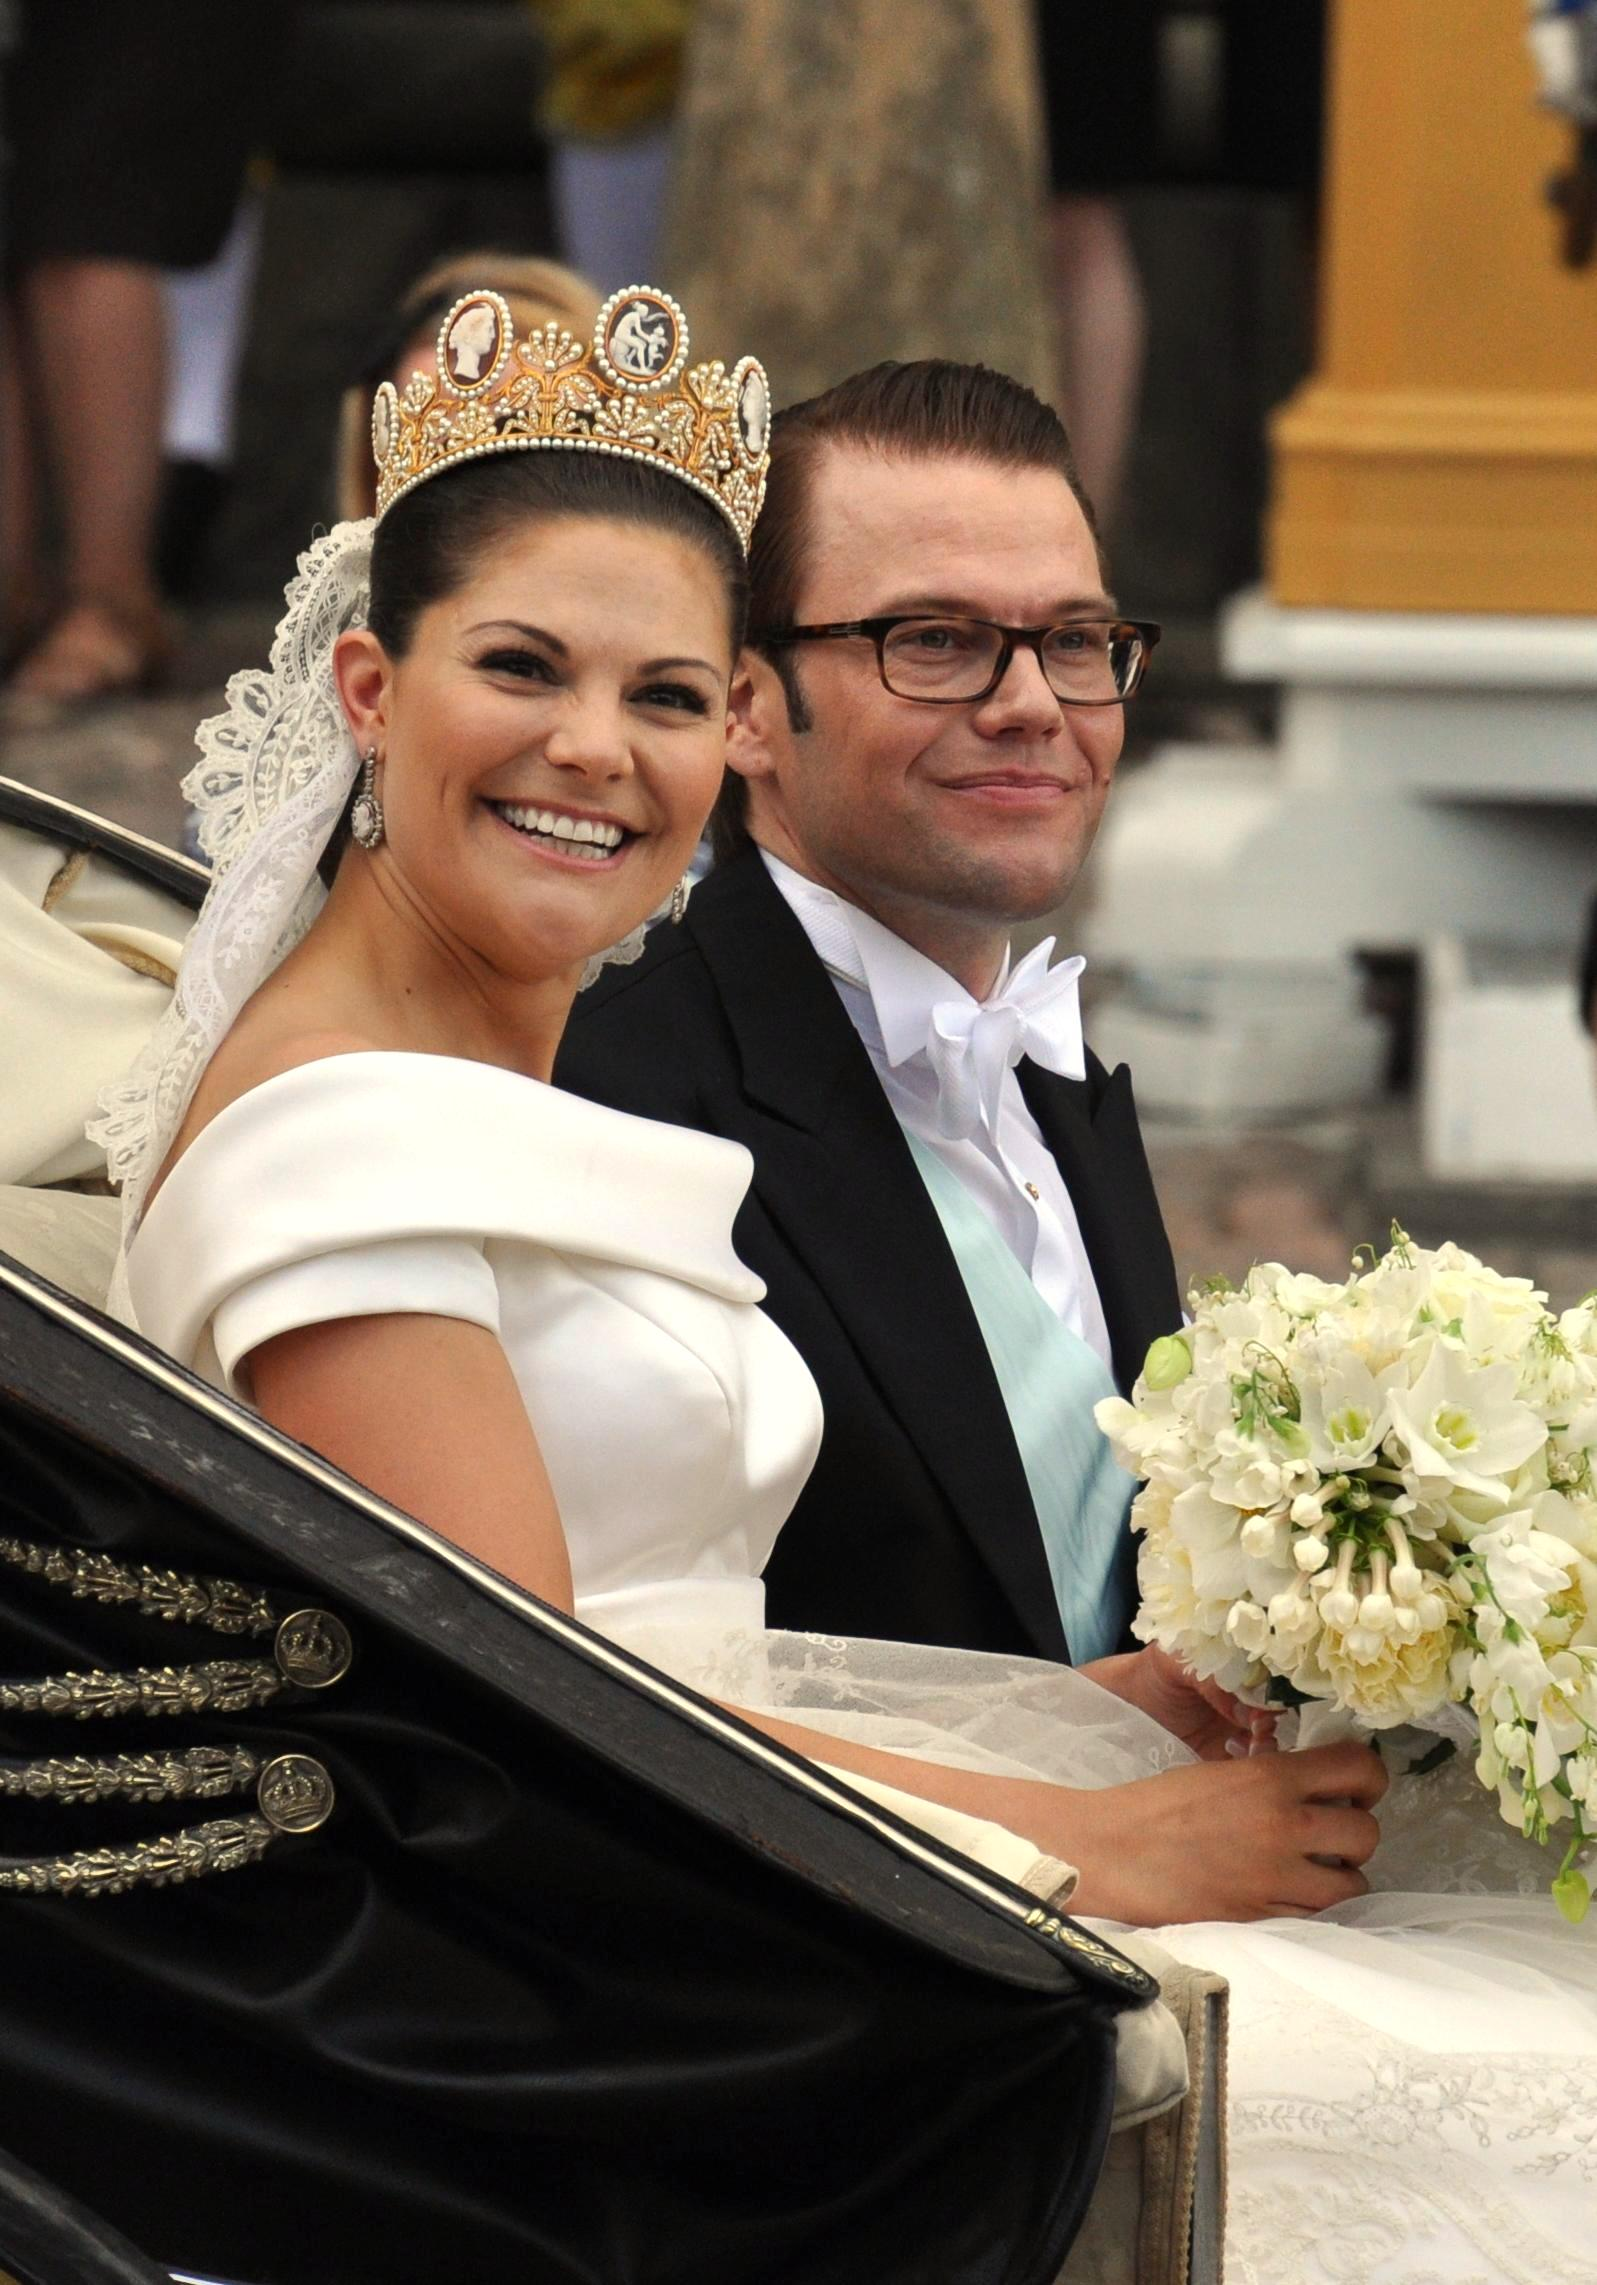 Wedding of Victoria, Crown Princess of Sweden, and Daniel Westling; Cortège at Slottsbacken